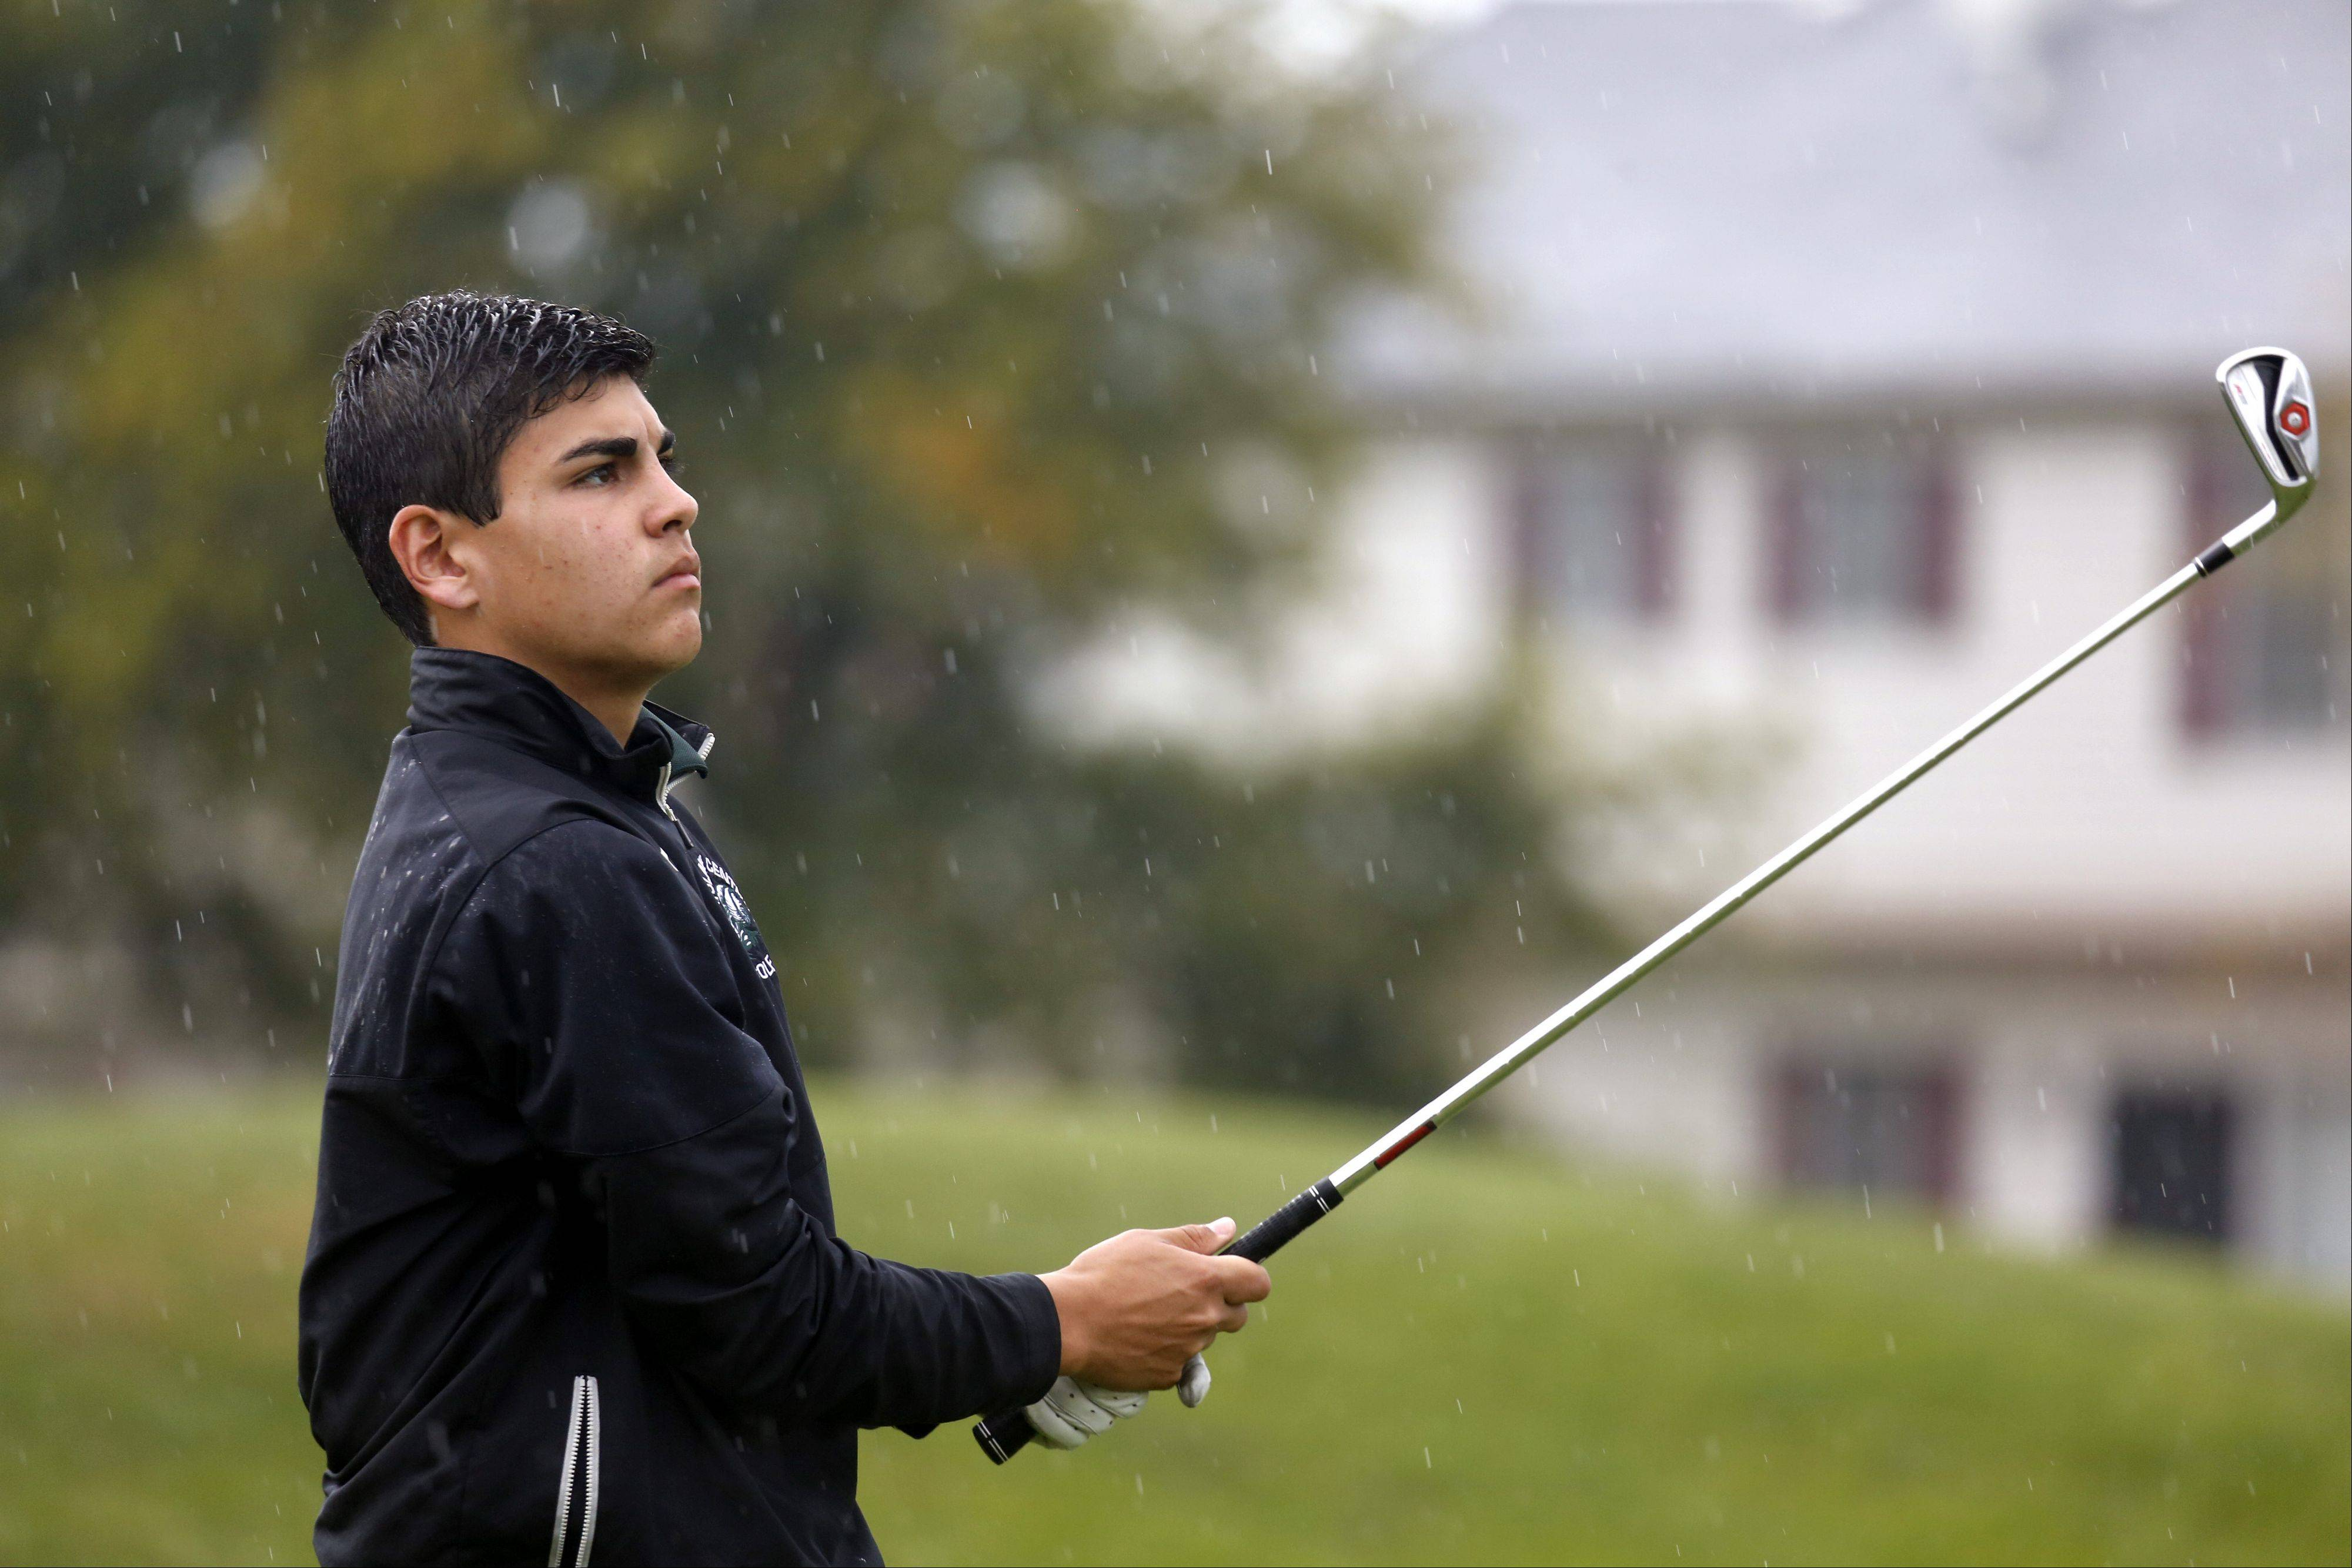 Grayslake Central's Kyle Reynolds watches his shot on the 17th tee during the Fox Valley Conference boys golf tournament at the Golf Club of Illinois Thursday in Algonquin.